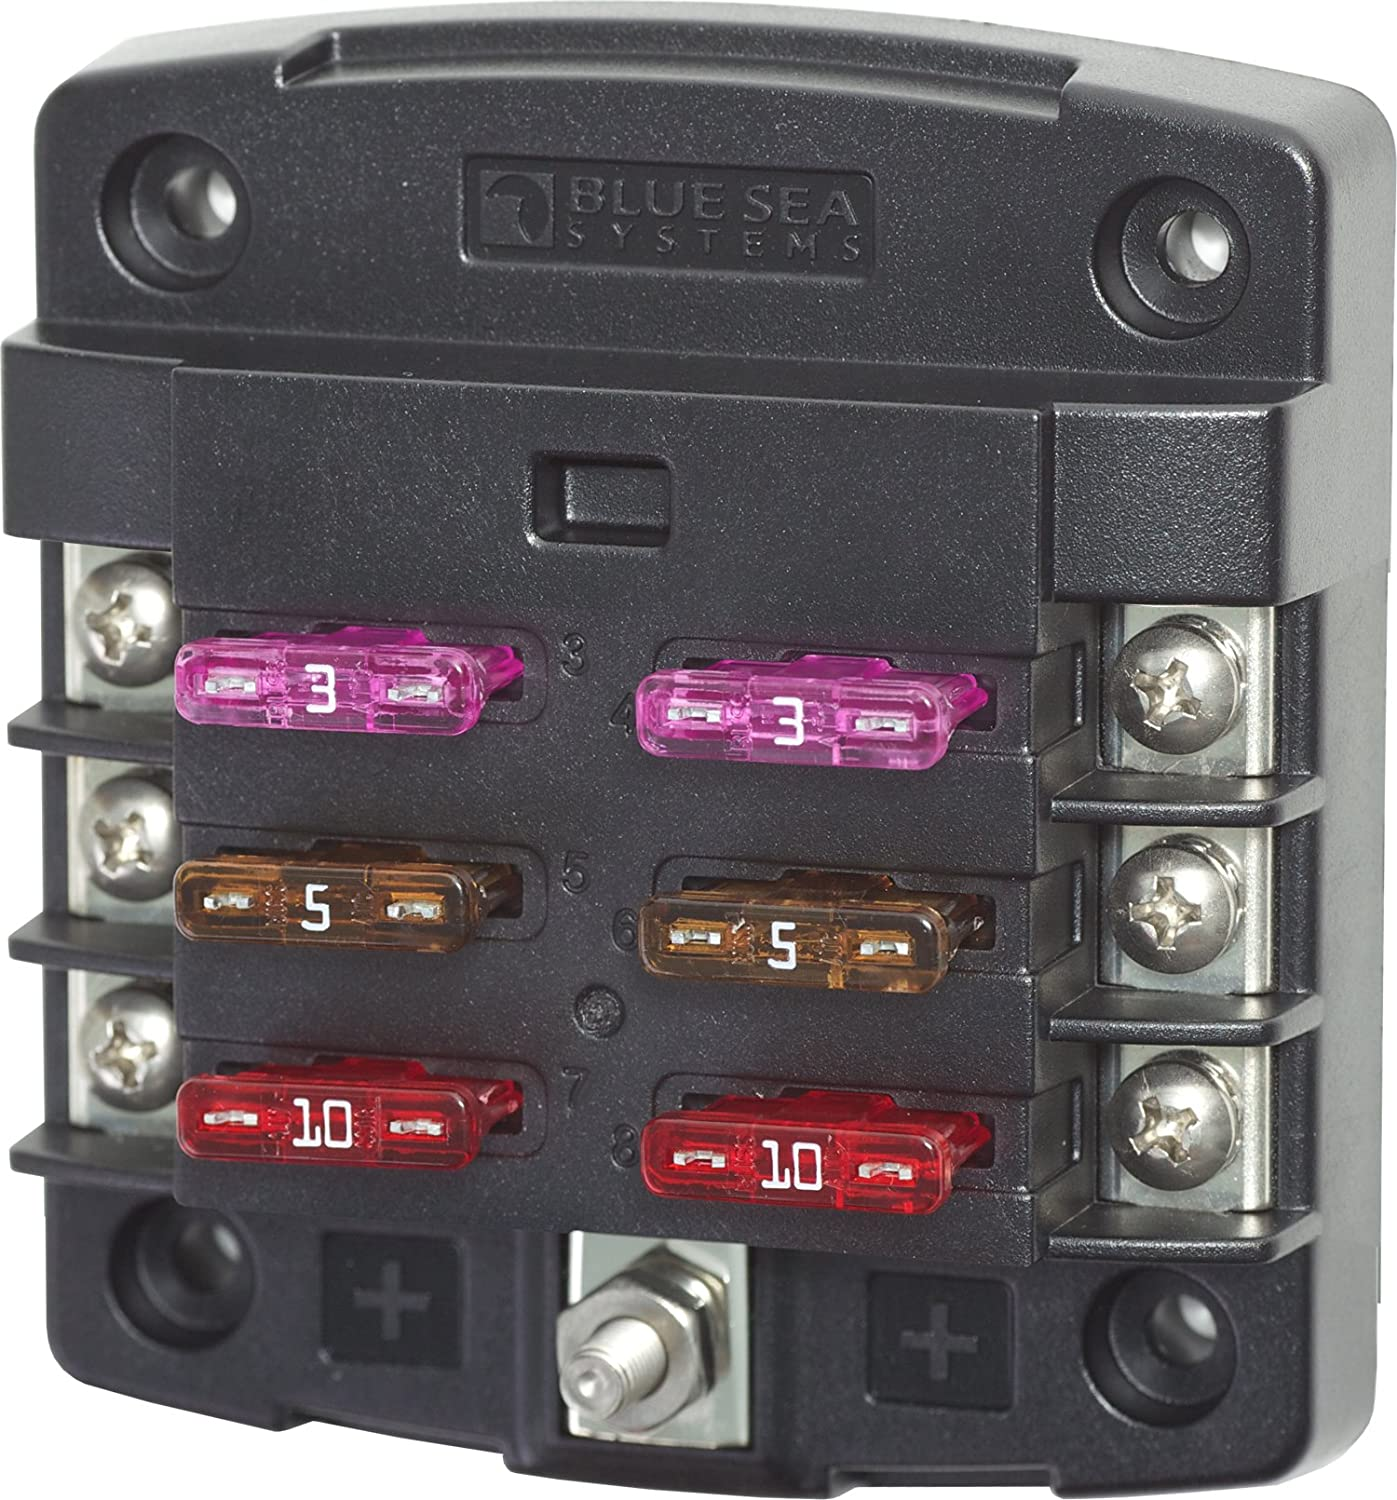 Blue Sea Systems St Blade 12 Circuit Fuse Block Audio Box Marine Sports Outdoors